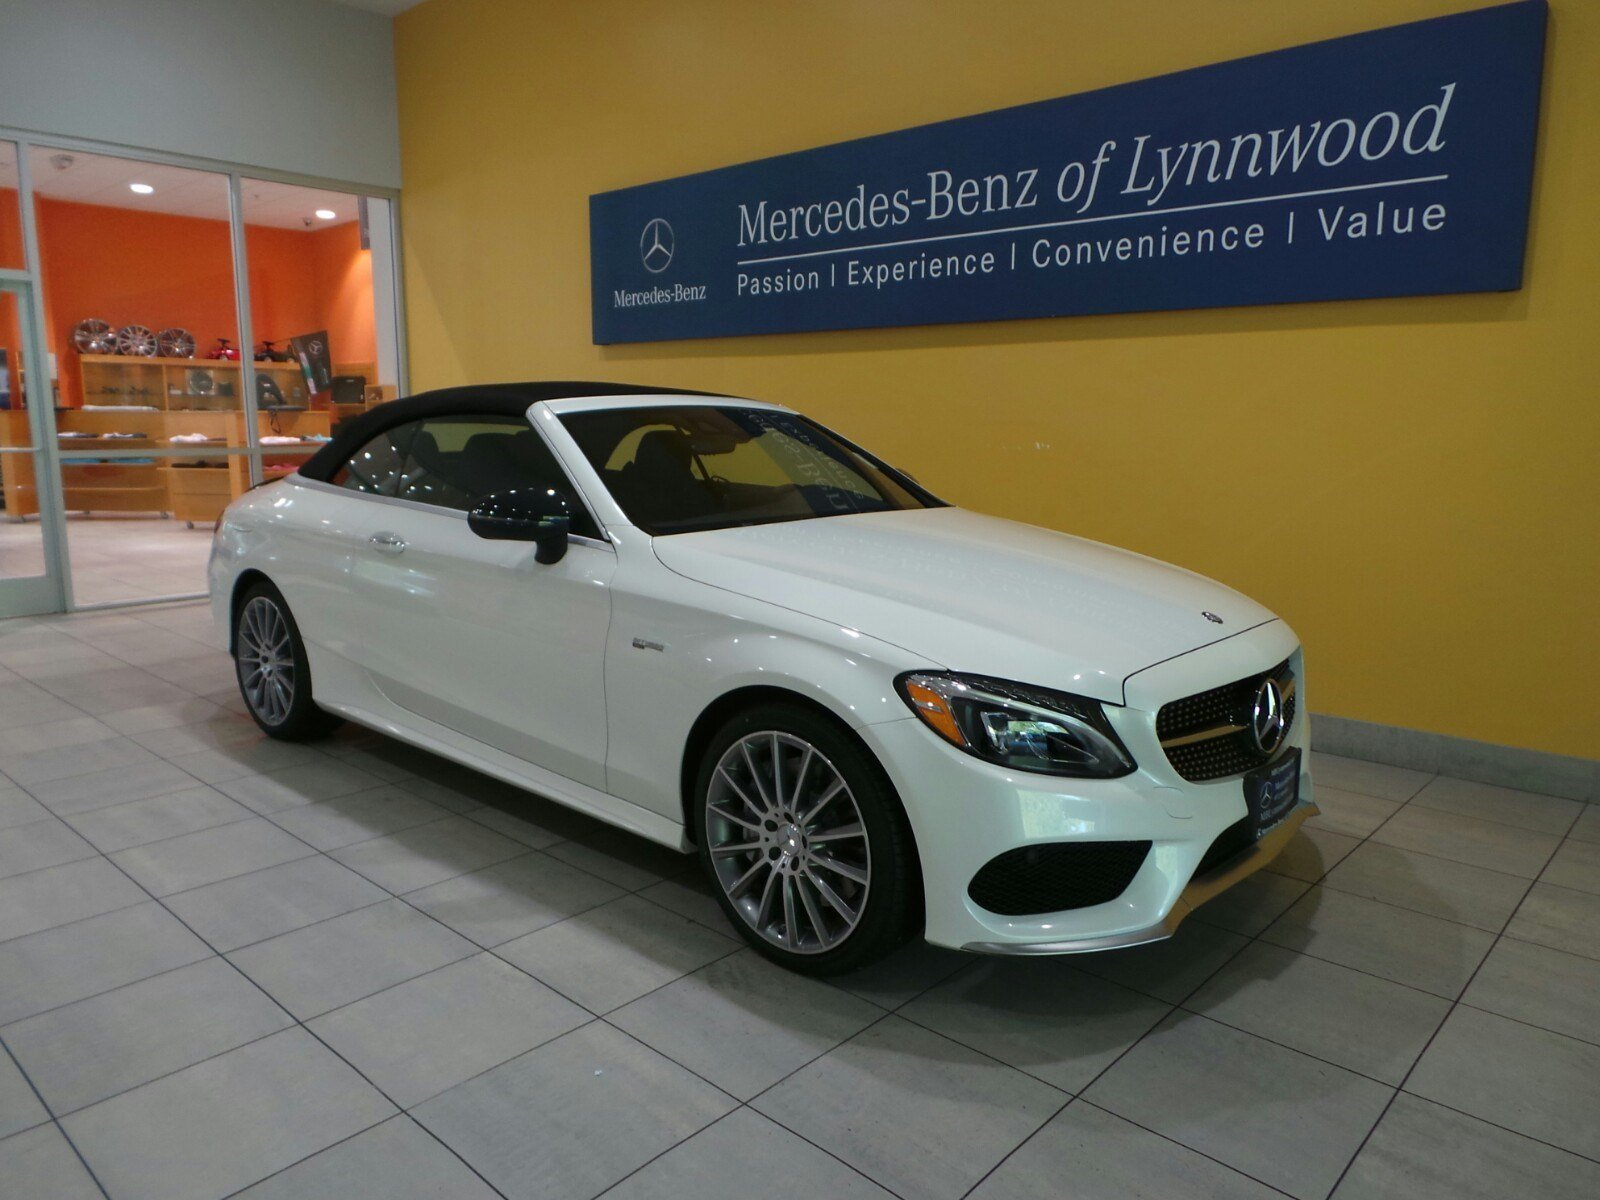 new 2017 mercedes benz c class amg c43 4matic cabriolet cabriolet in lynnwood 27373 mercedes. Black Bedroom Furniture Sets. Home Design Ideas